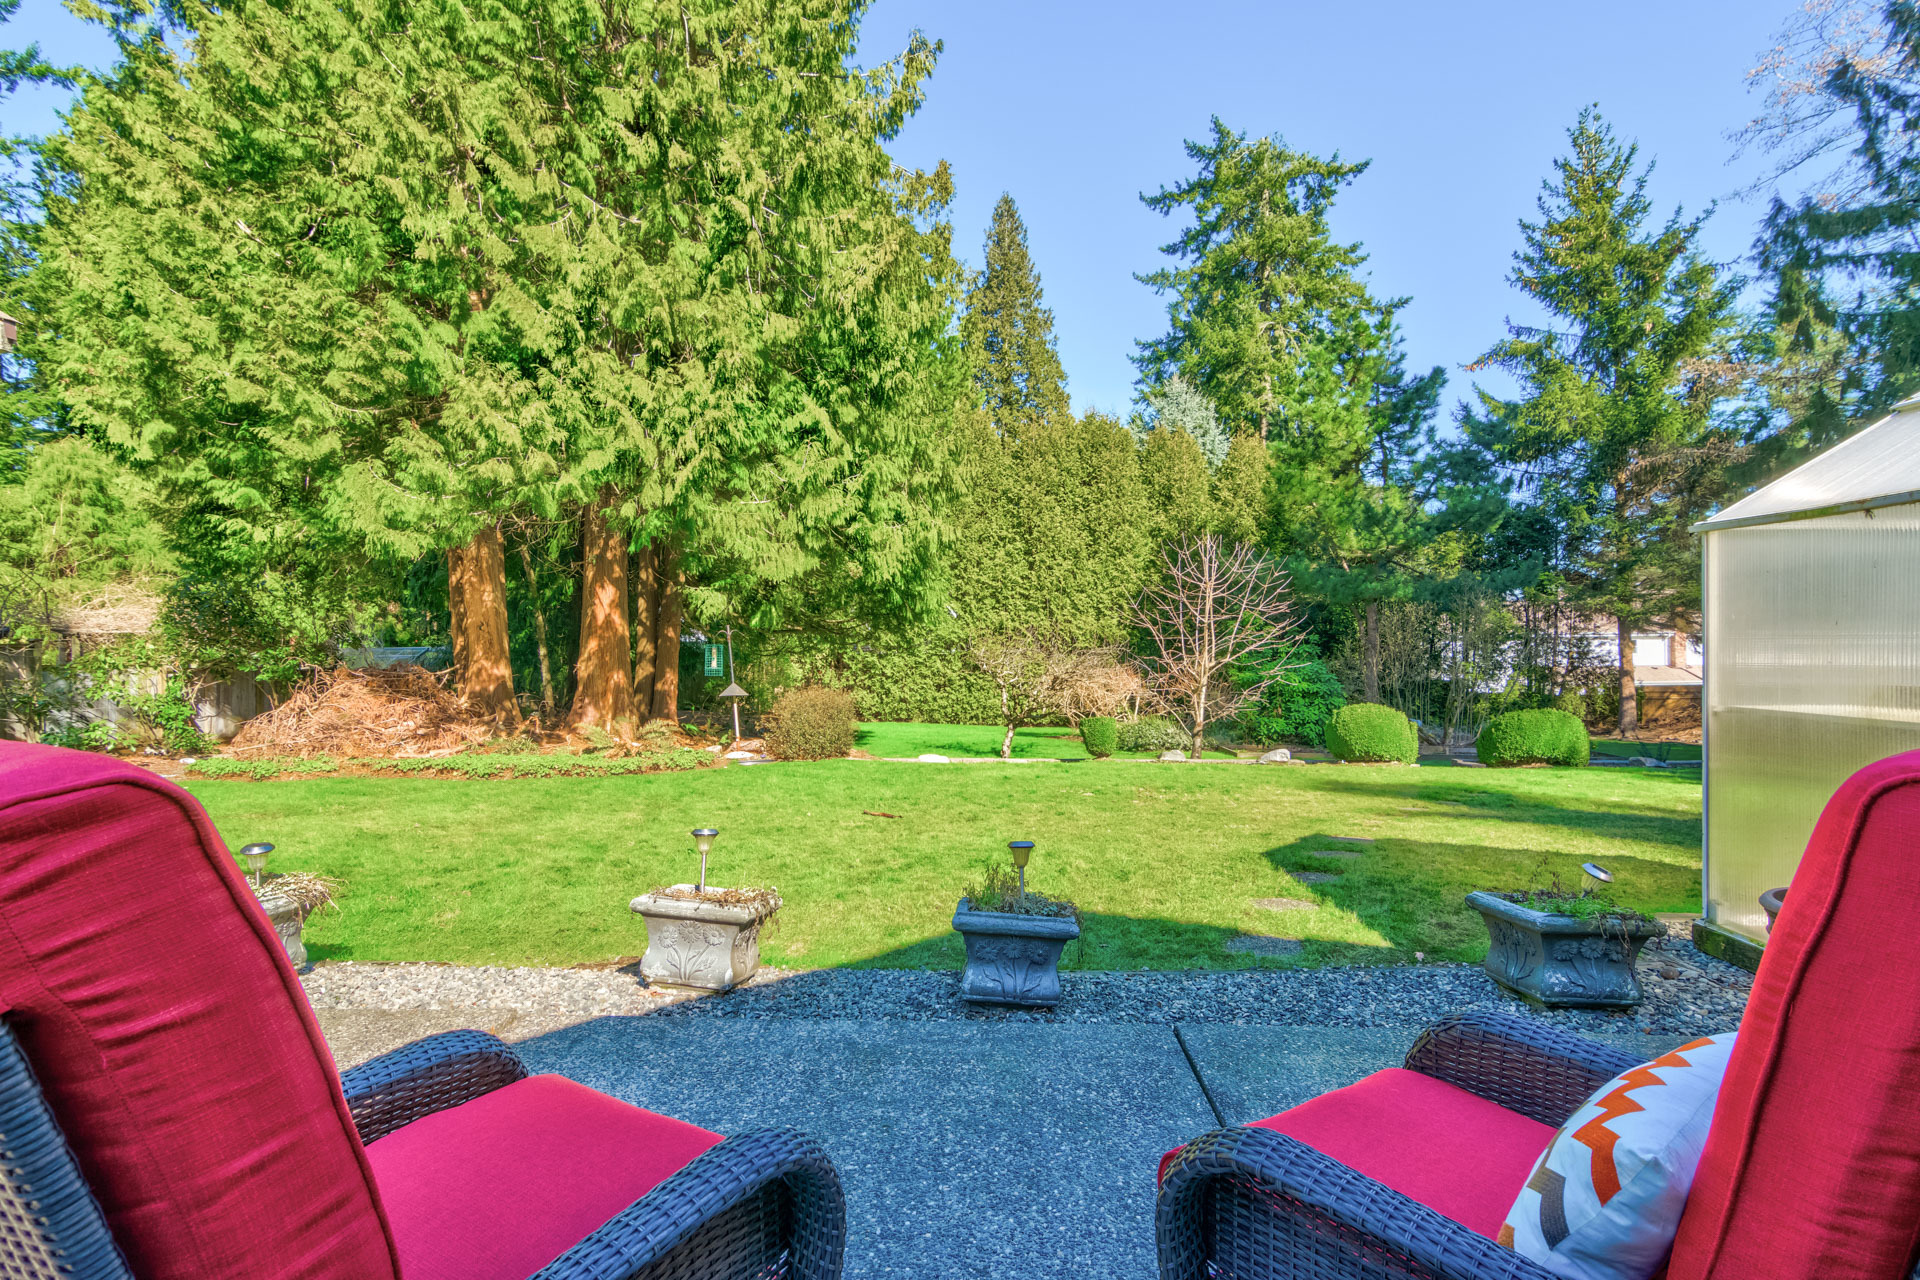 Patio & Backyard at 17237 26 Avenue, Grandview Surrey, South Surrey White Rock